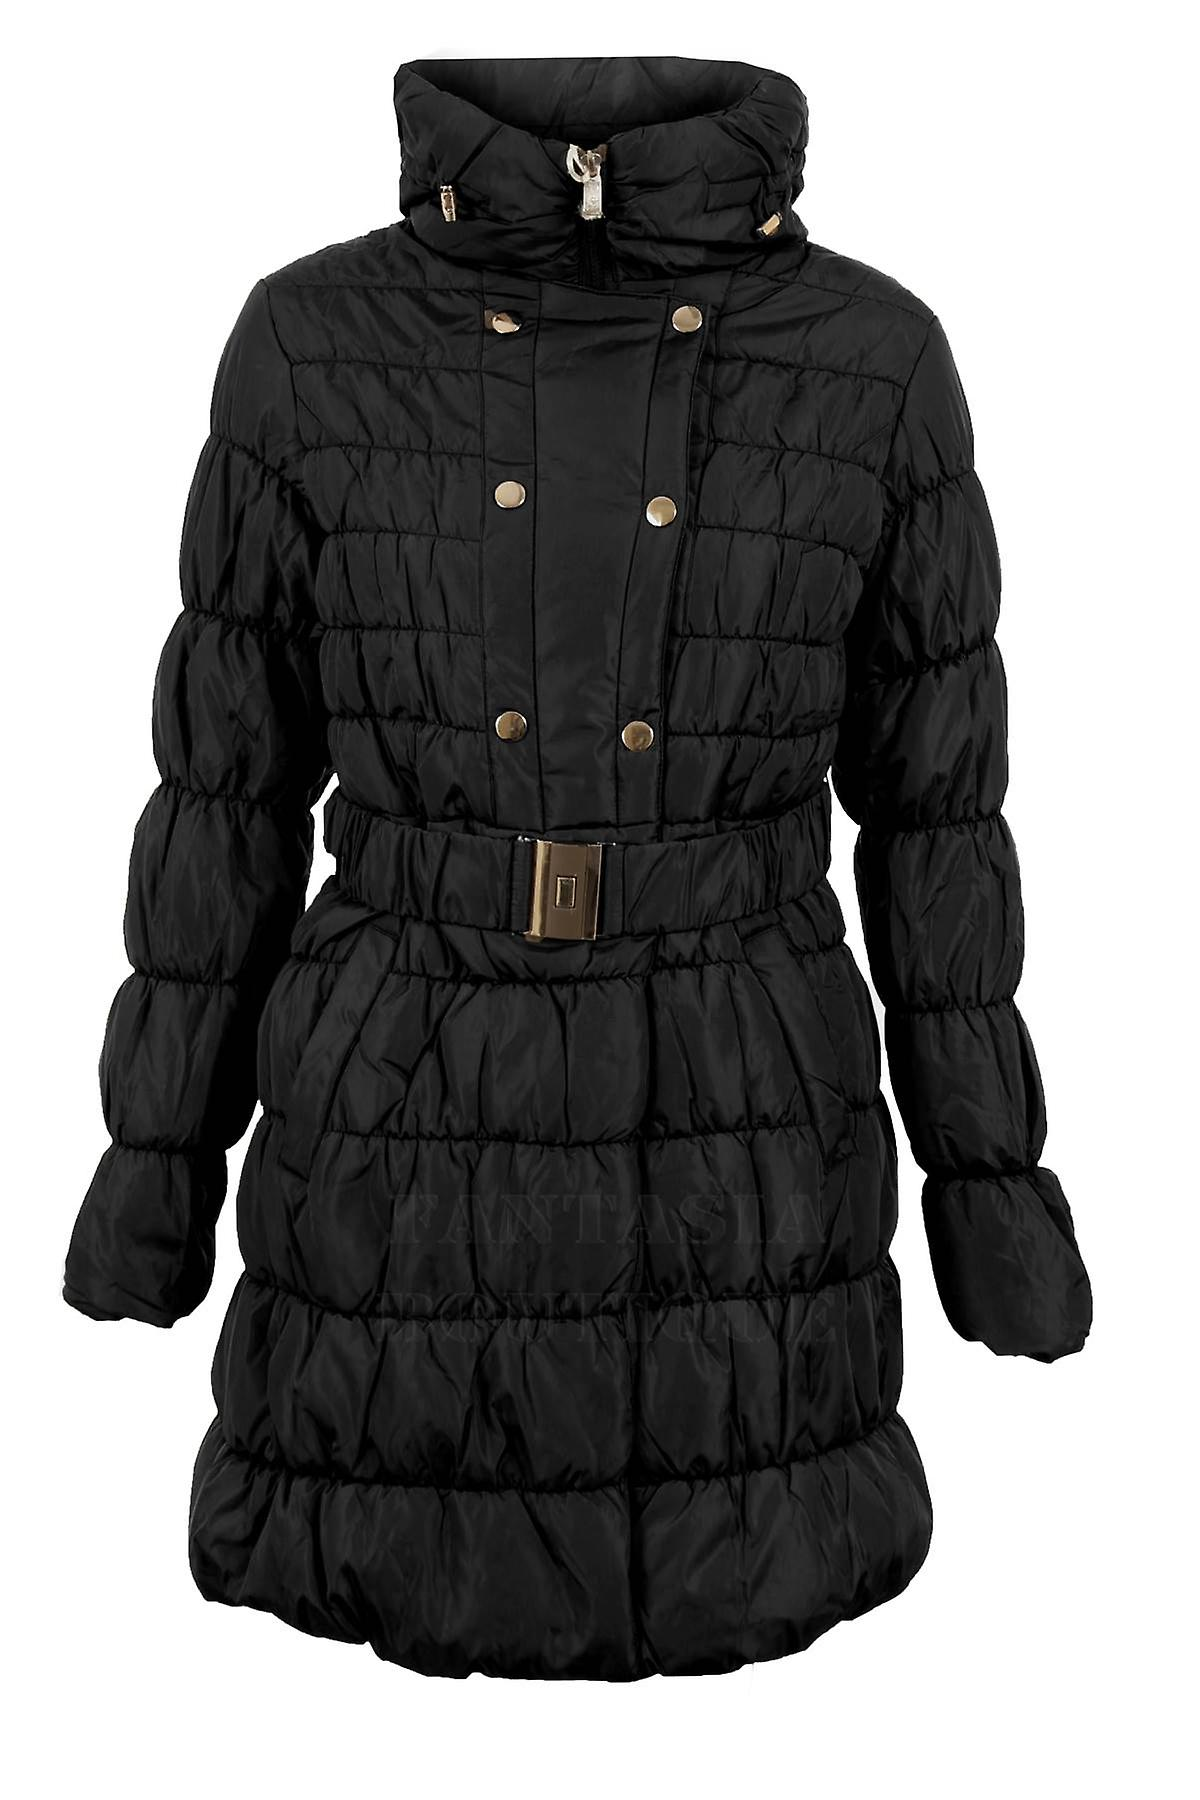 Ladies Long Sleeve Popper Zip Padded Quilted Bubble Women's Jacket Winter Coat